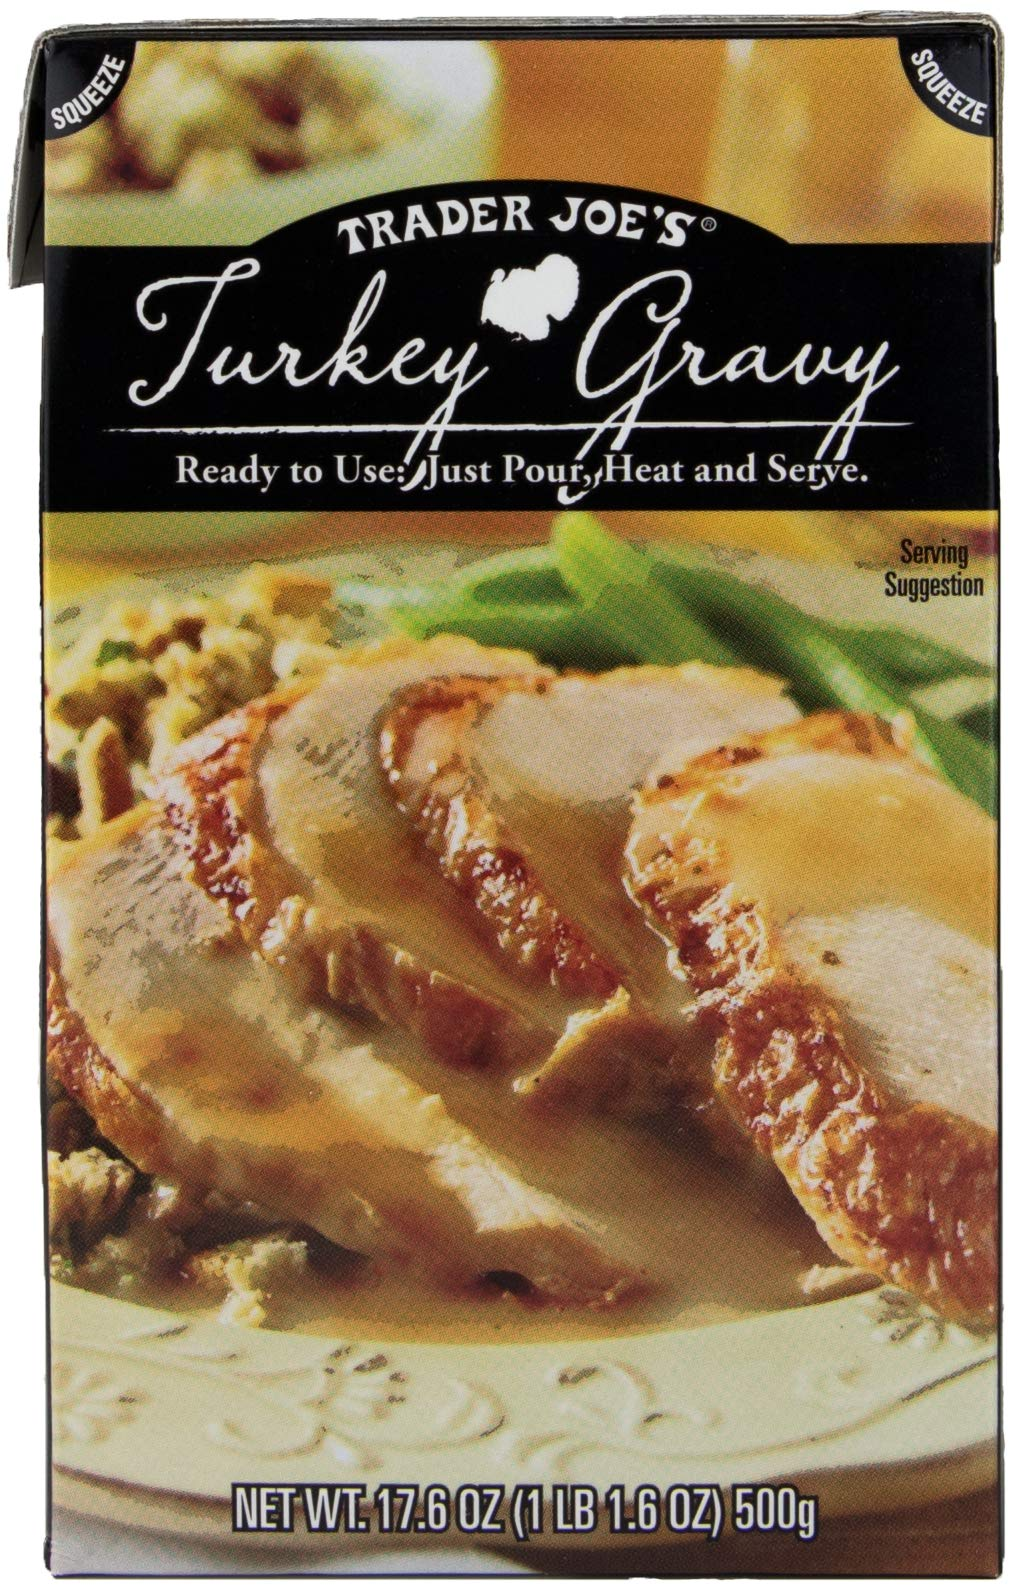 3 Boxes Trader Joes Turkey Gravy 17.6 Oz. Each by Trader Joe's